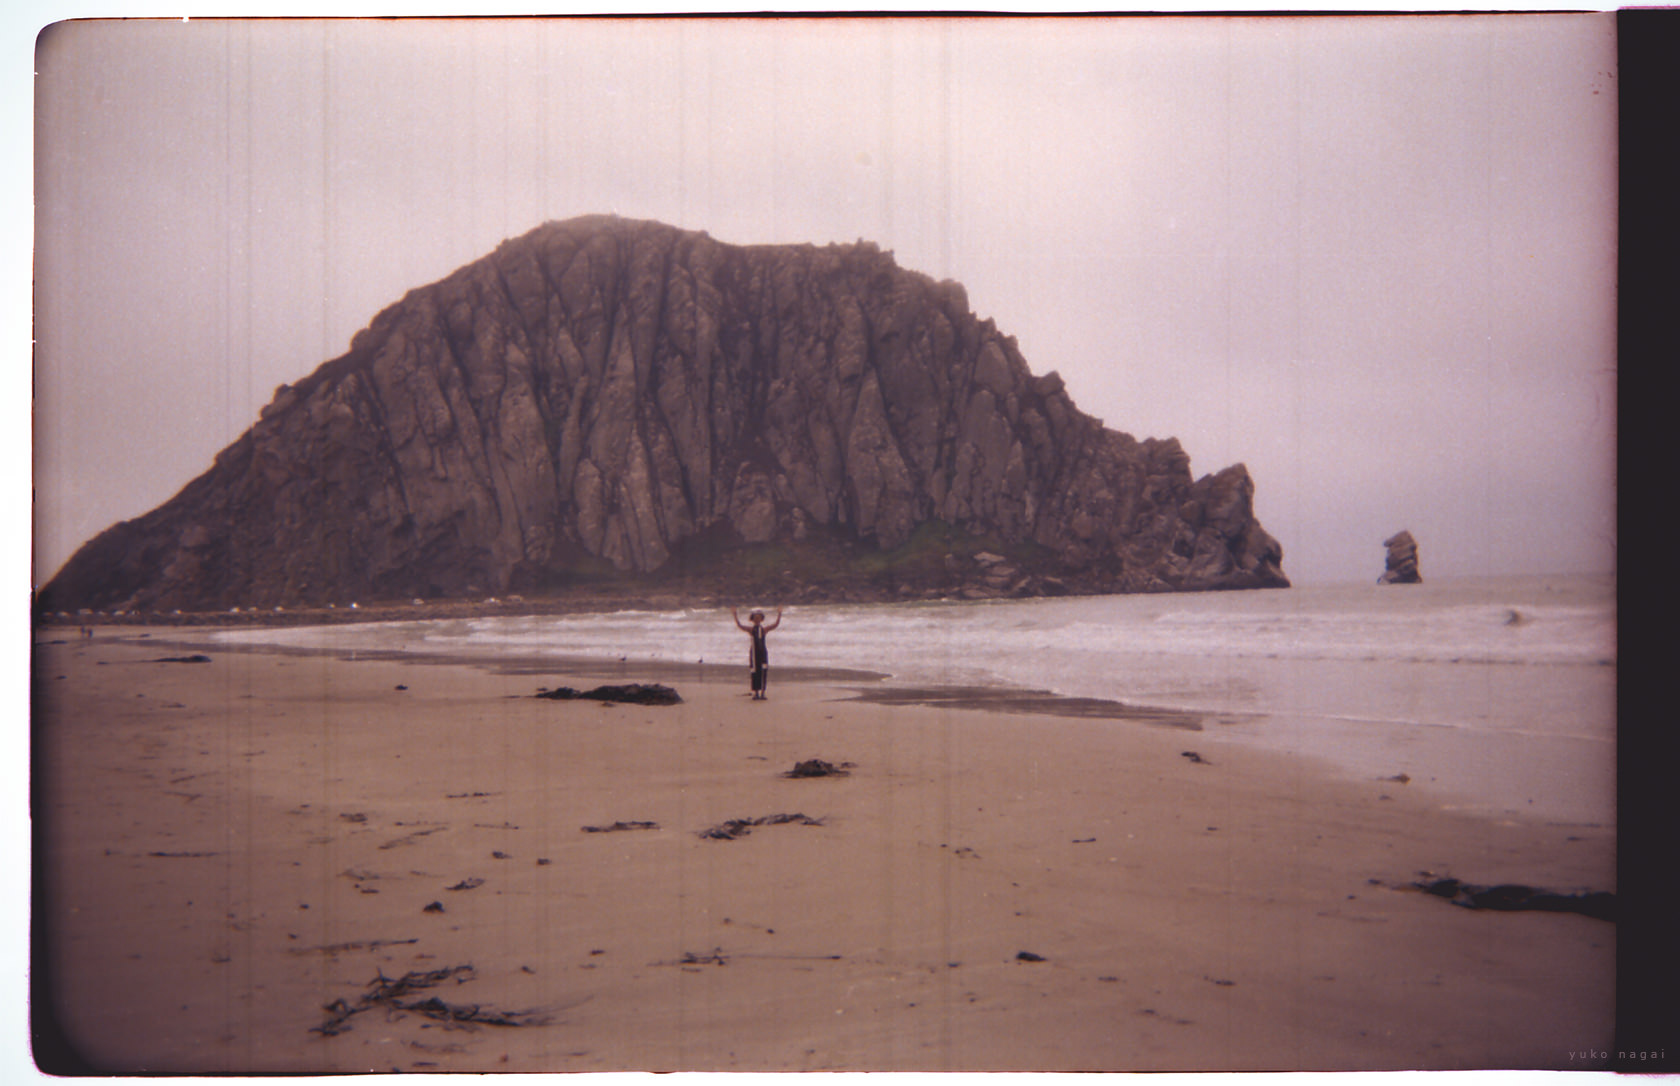 Beach with a large rock and a tourist.